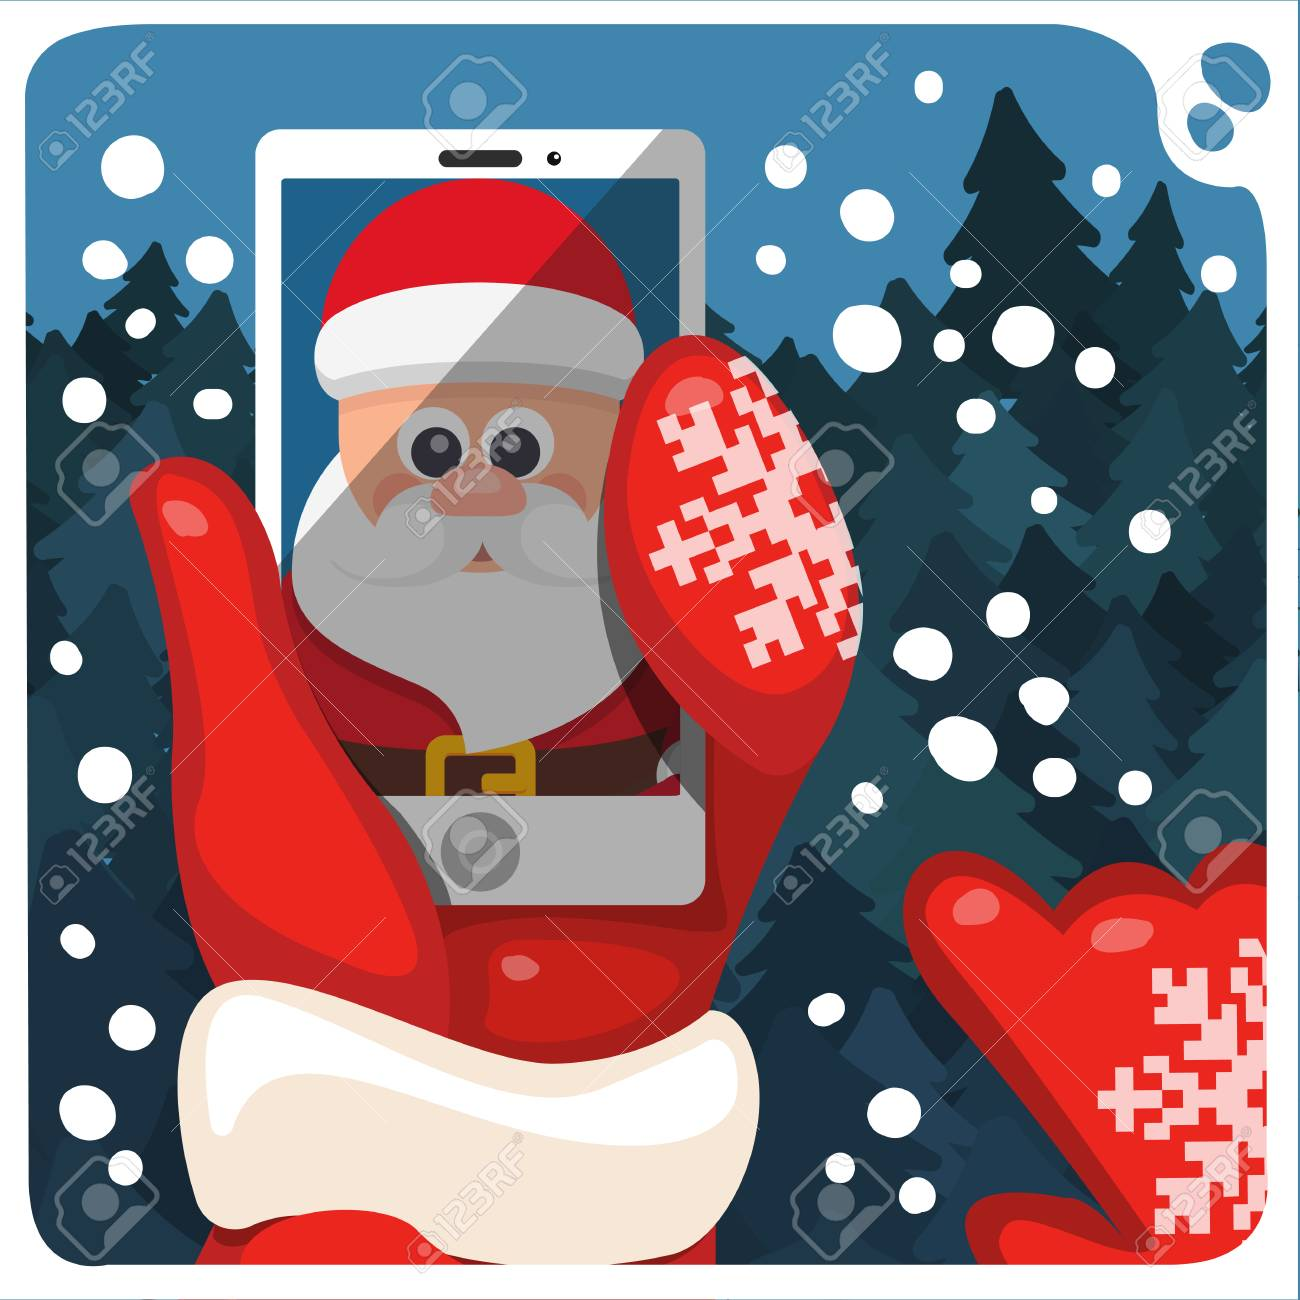 Christmas Illustration With Santas Hands Selfie And Mobile Phone Royalty Free Cliparts Vectors And Stock Illustration Image 66279138